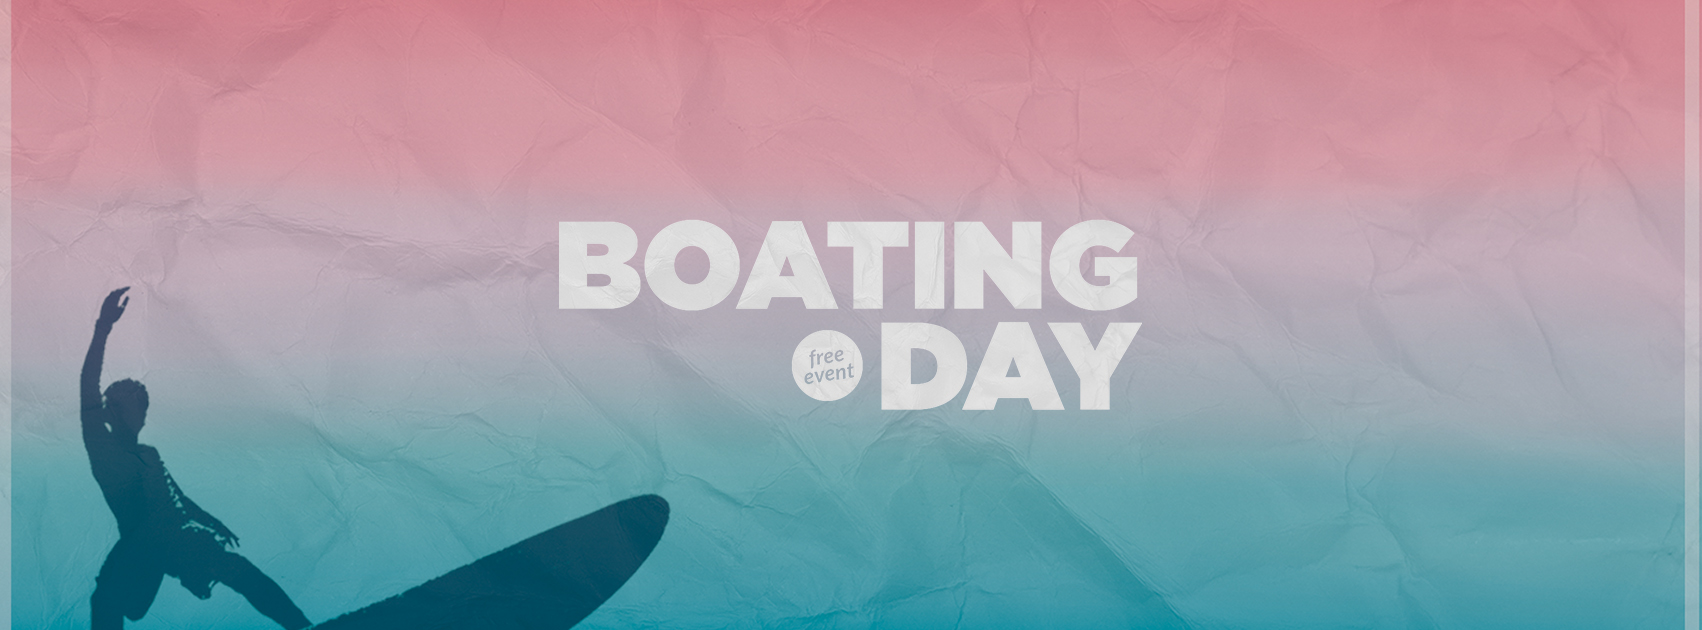 Boating Day FB Cover Photo.jpg